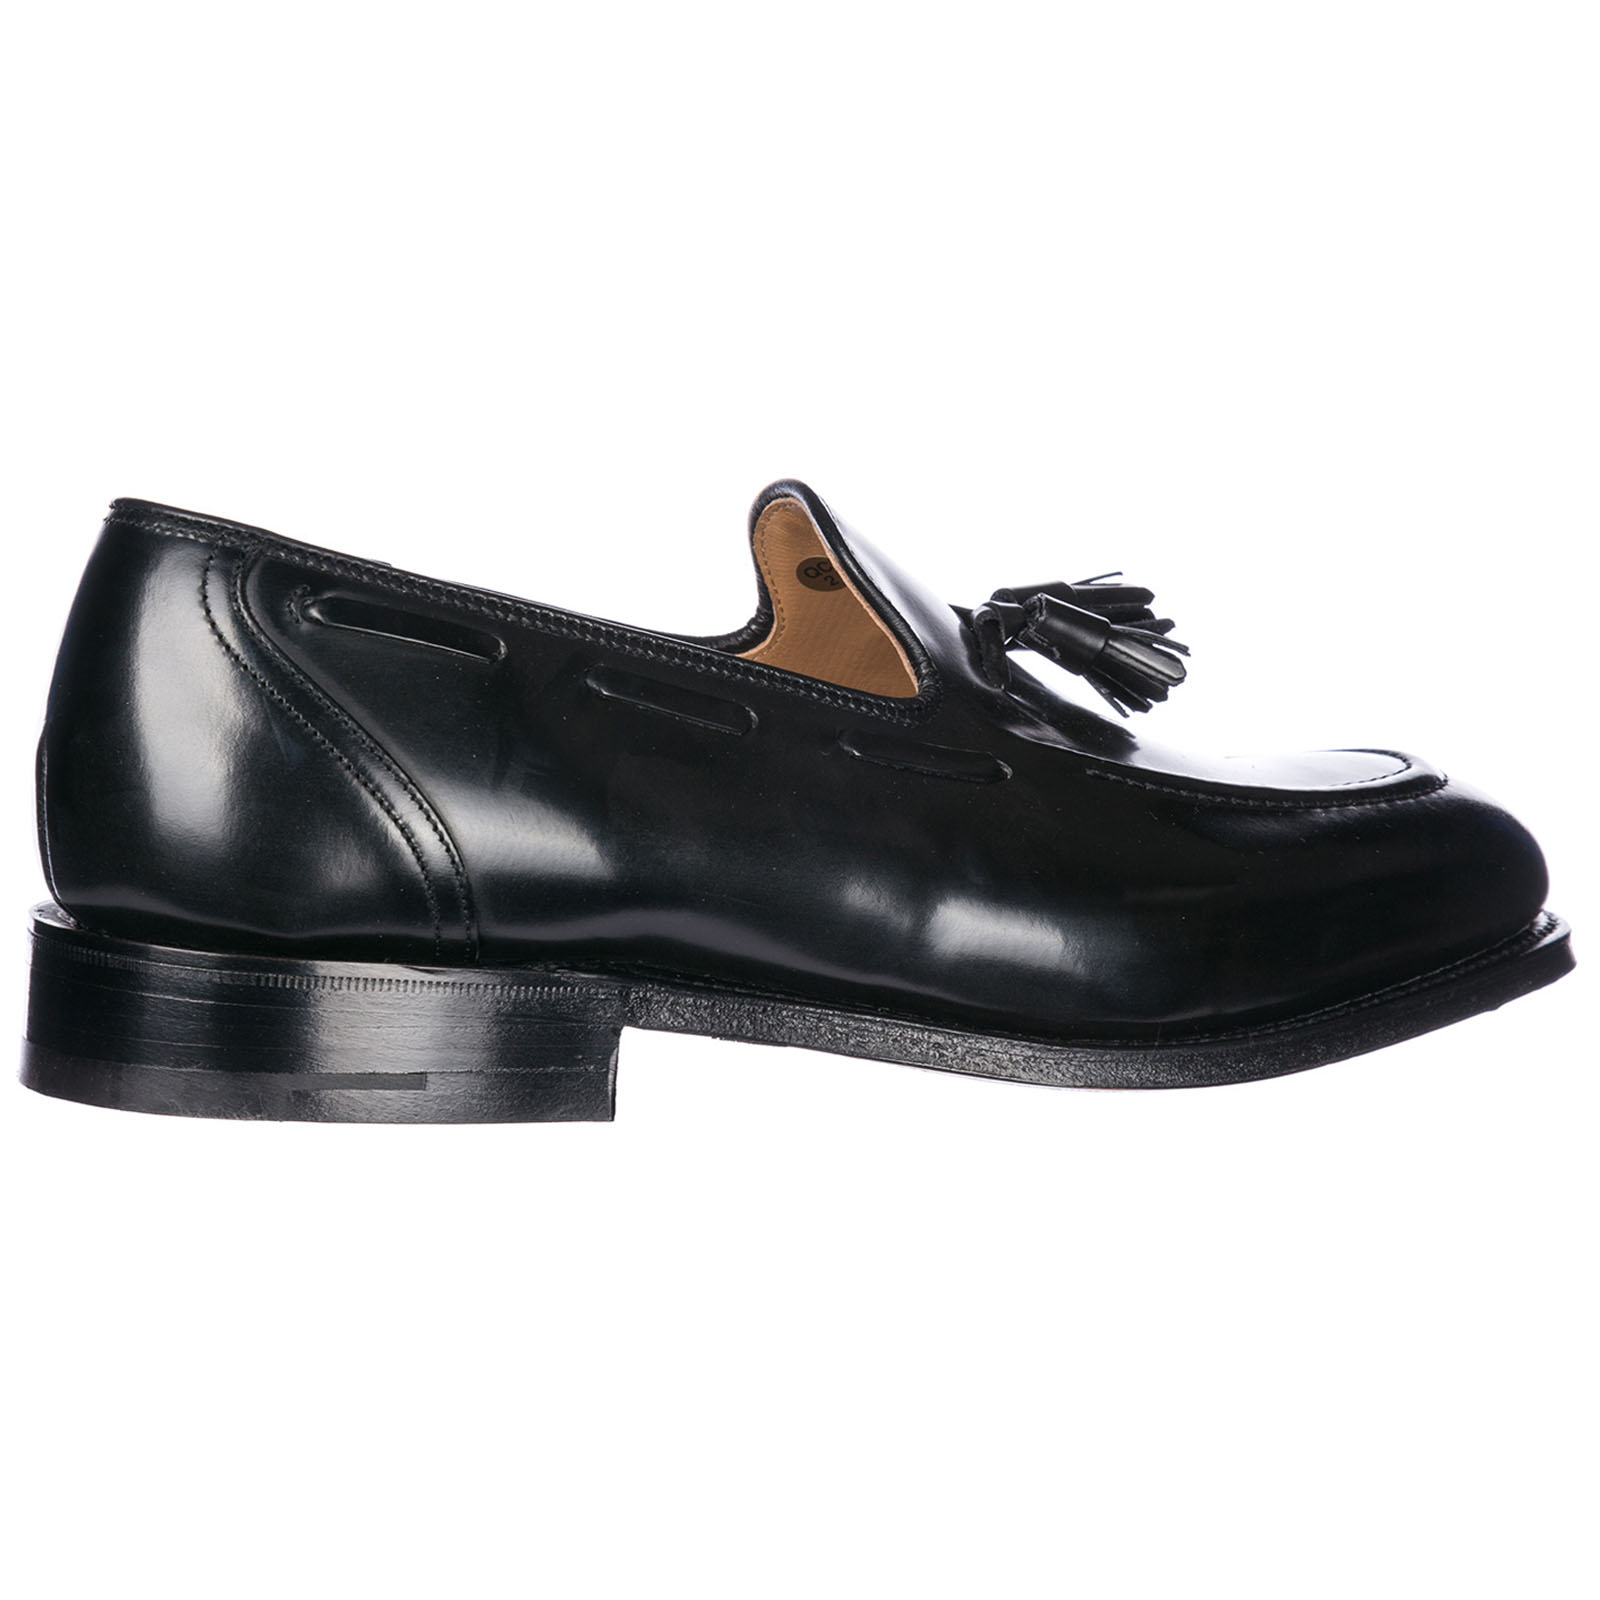 Men's leather loafers moccasins  kingsley